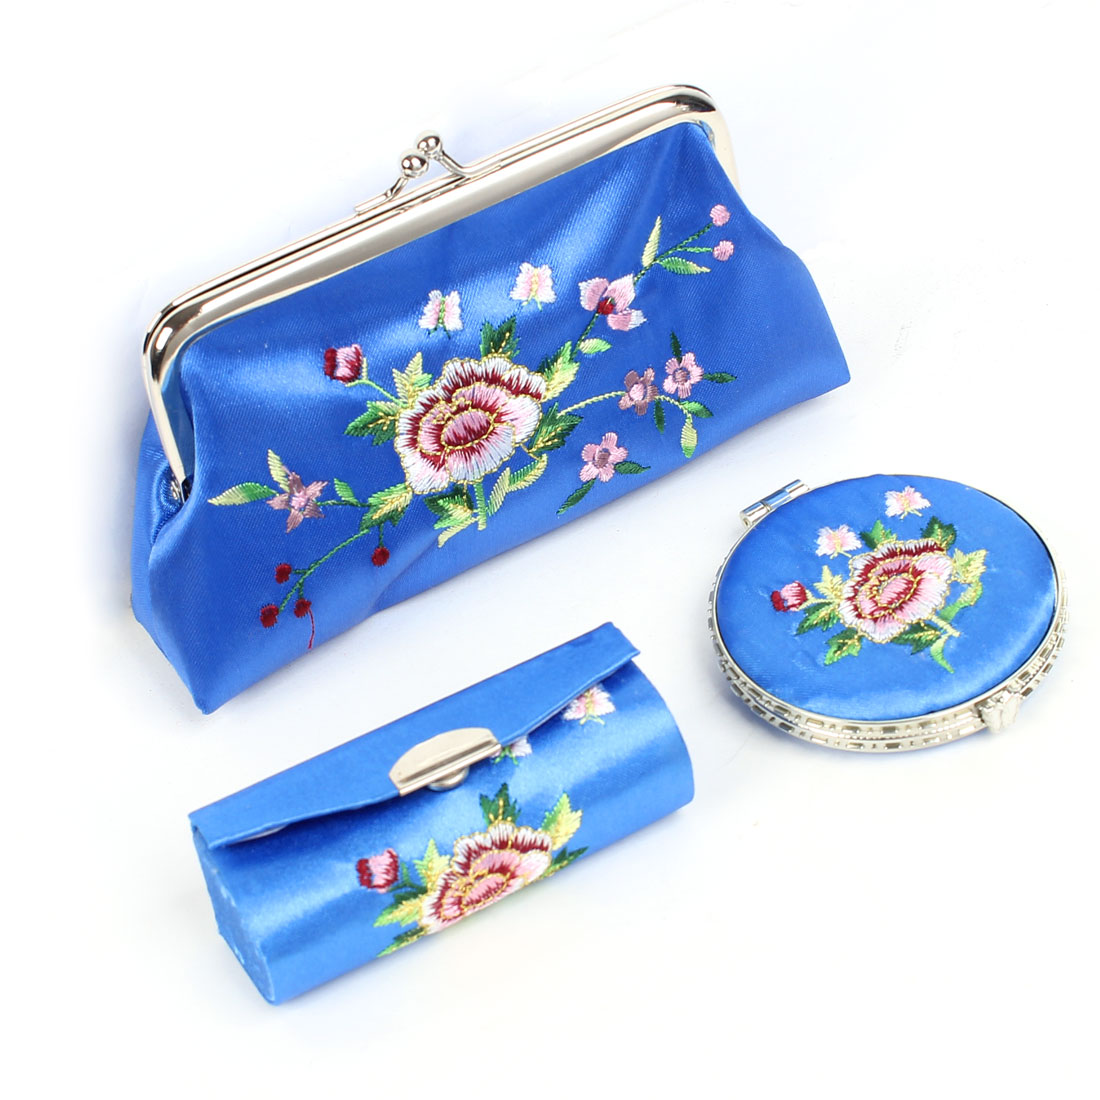 3 in 1 Floral Embroidered Kiss Lock Clasp Wallet Mirror Lipstick Holder Case Blue